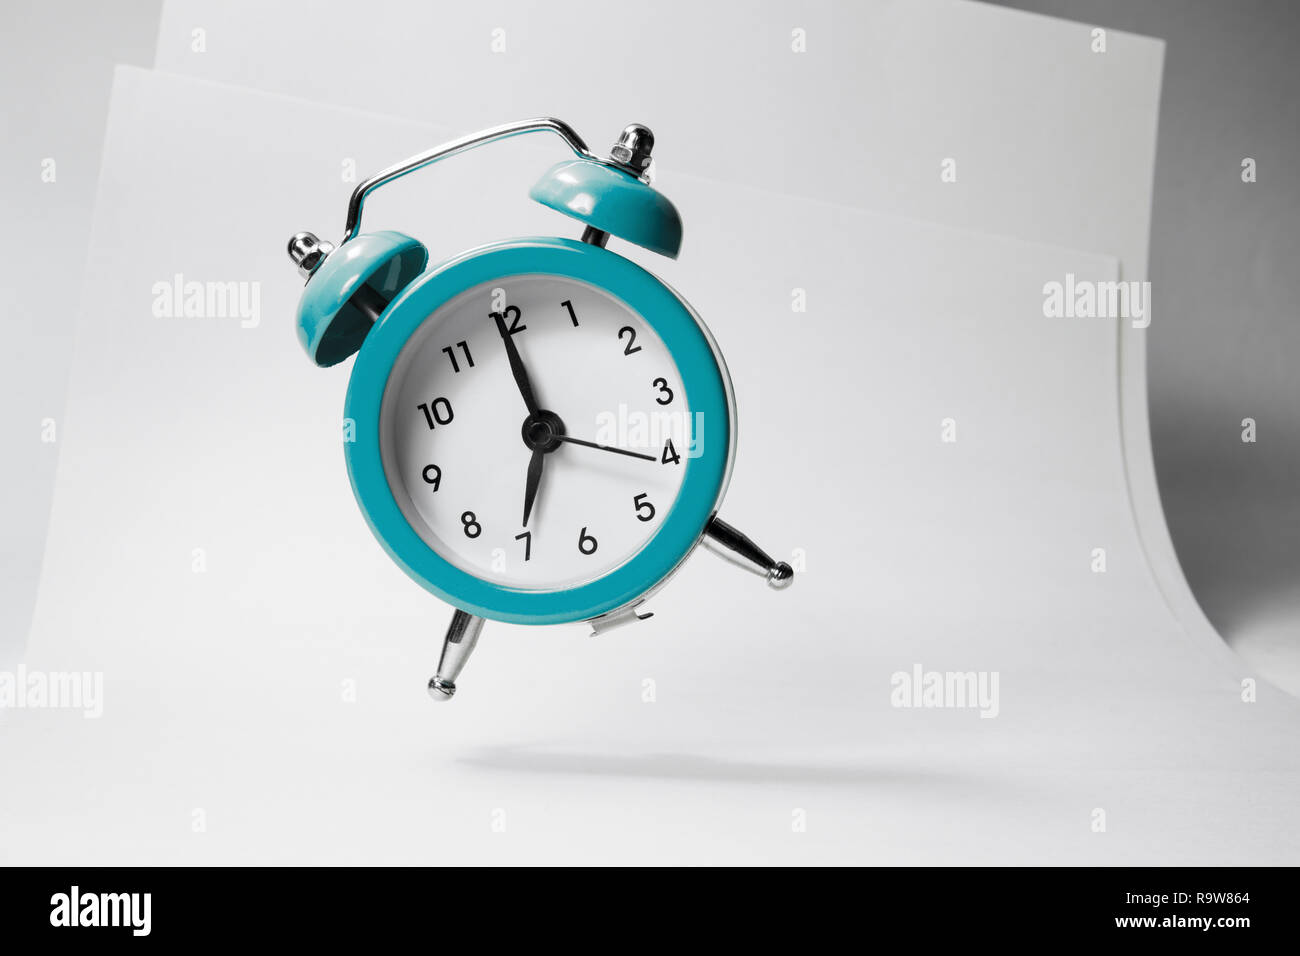 The blue alarm clock bounces against the background of business papers. - Stock Image